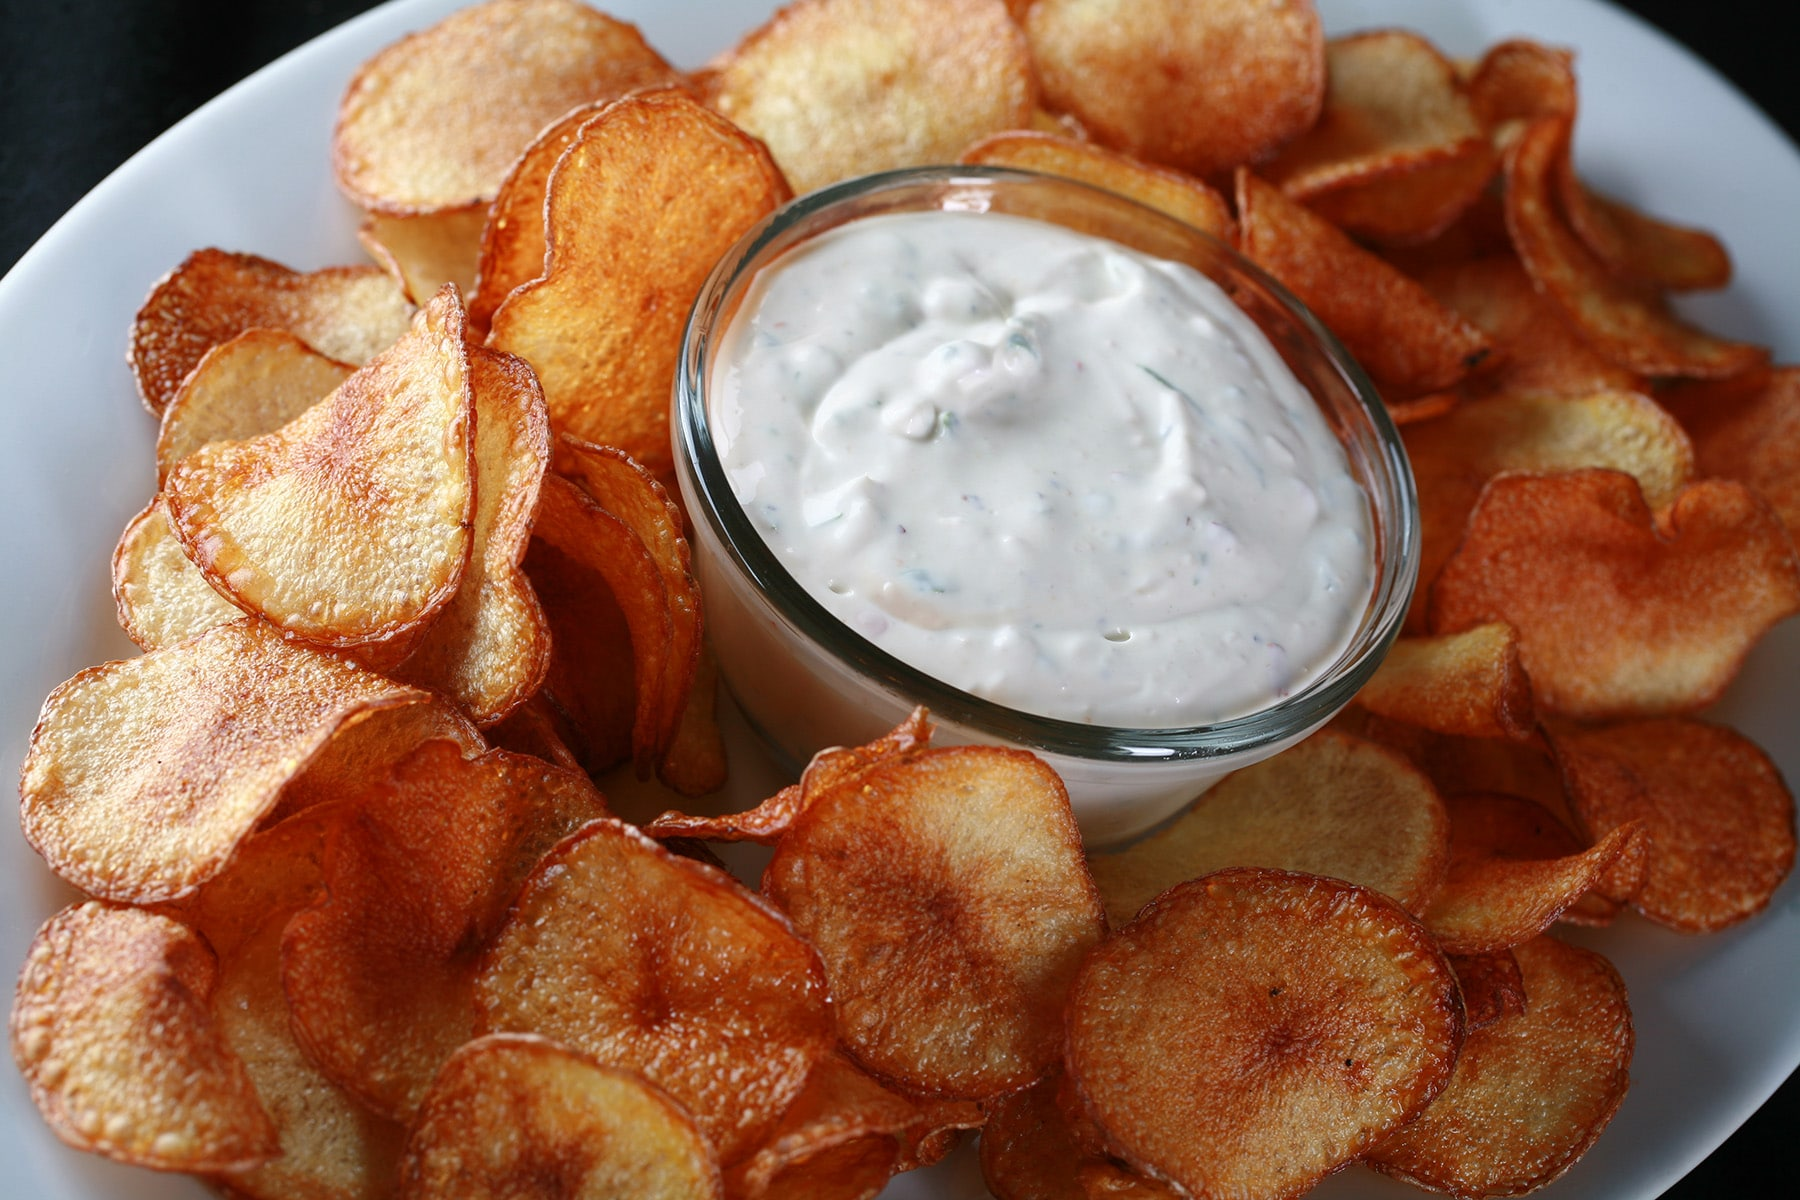 A large platter of cactus cut fries - spicy fried potato slices - with a bowl of cactus dip.